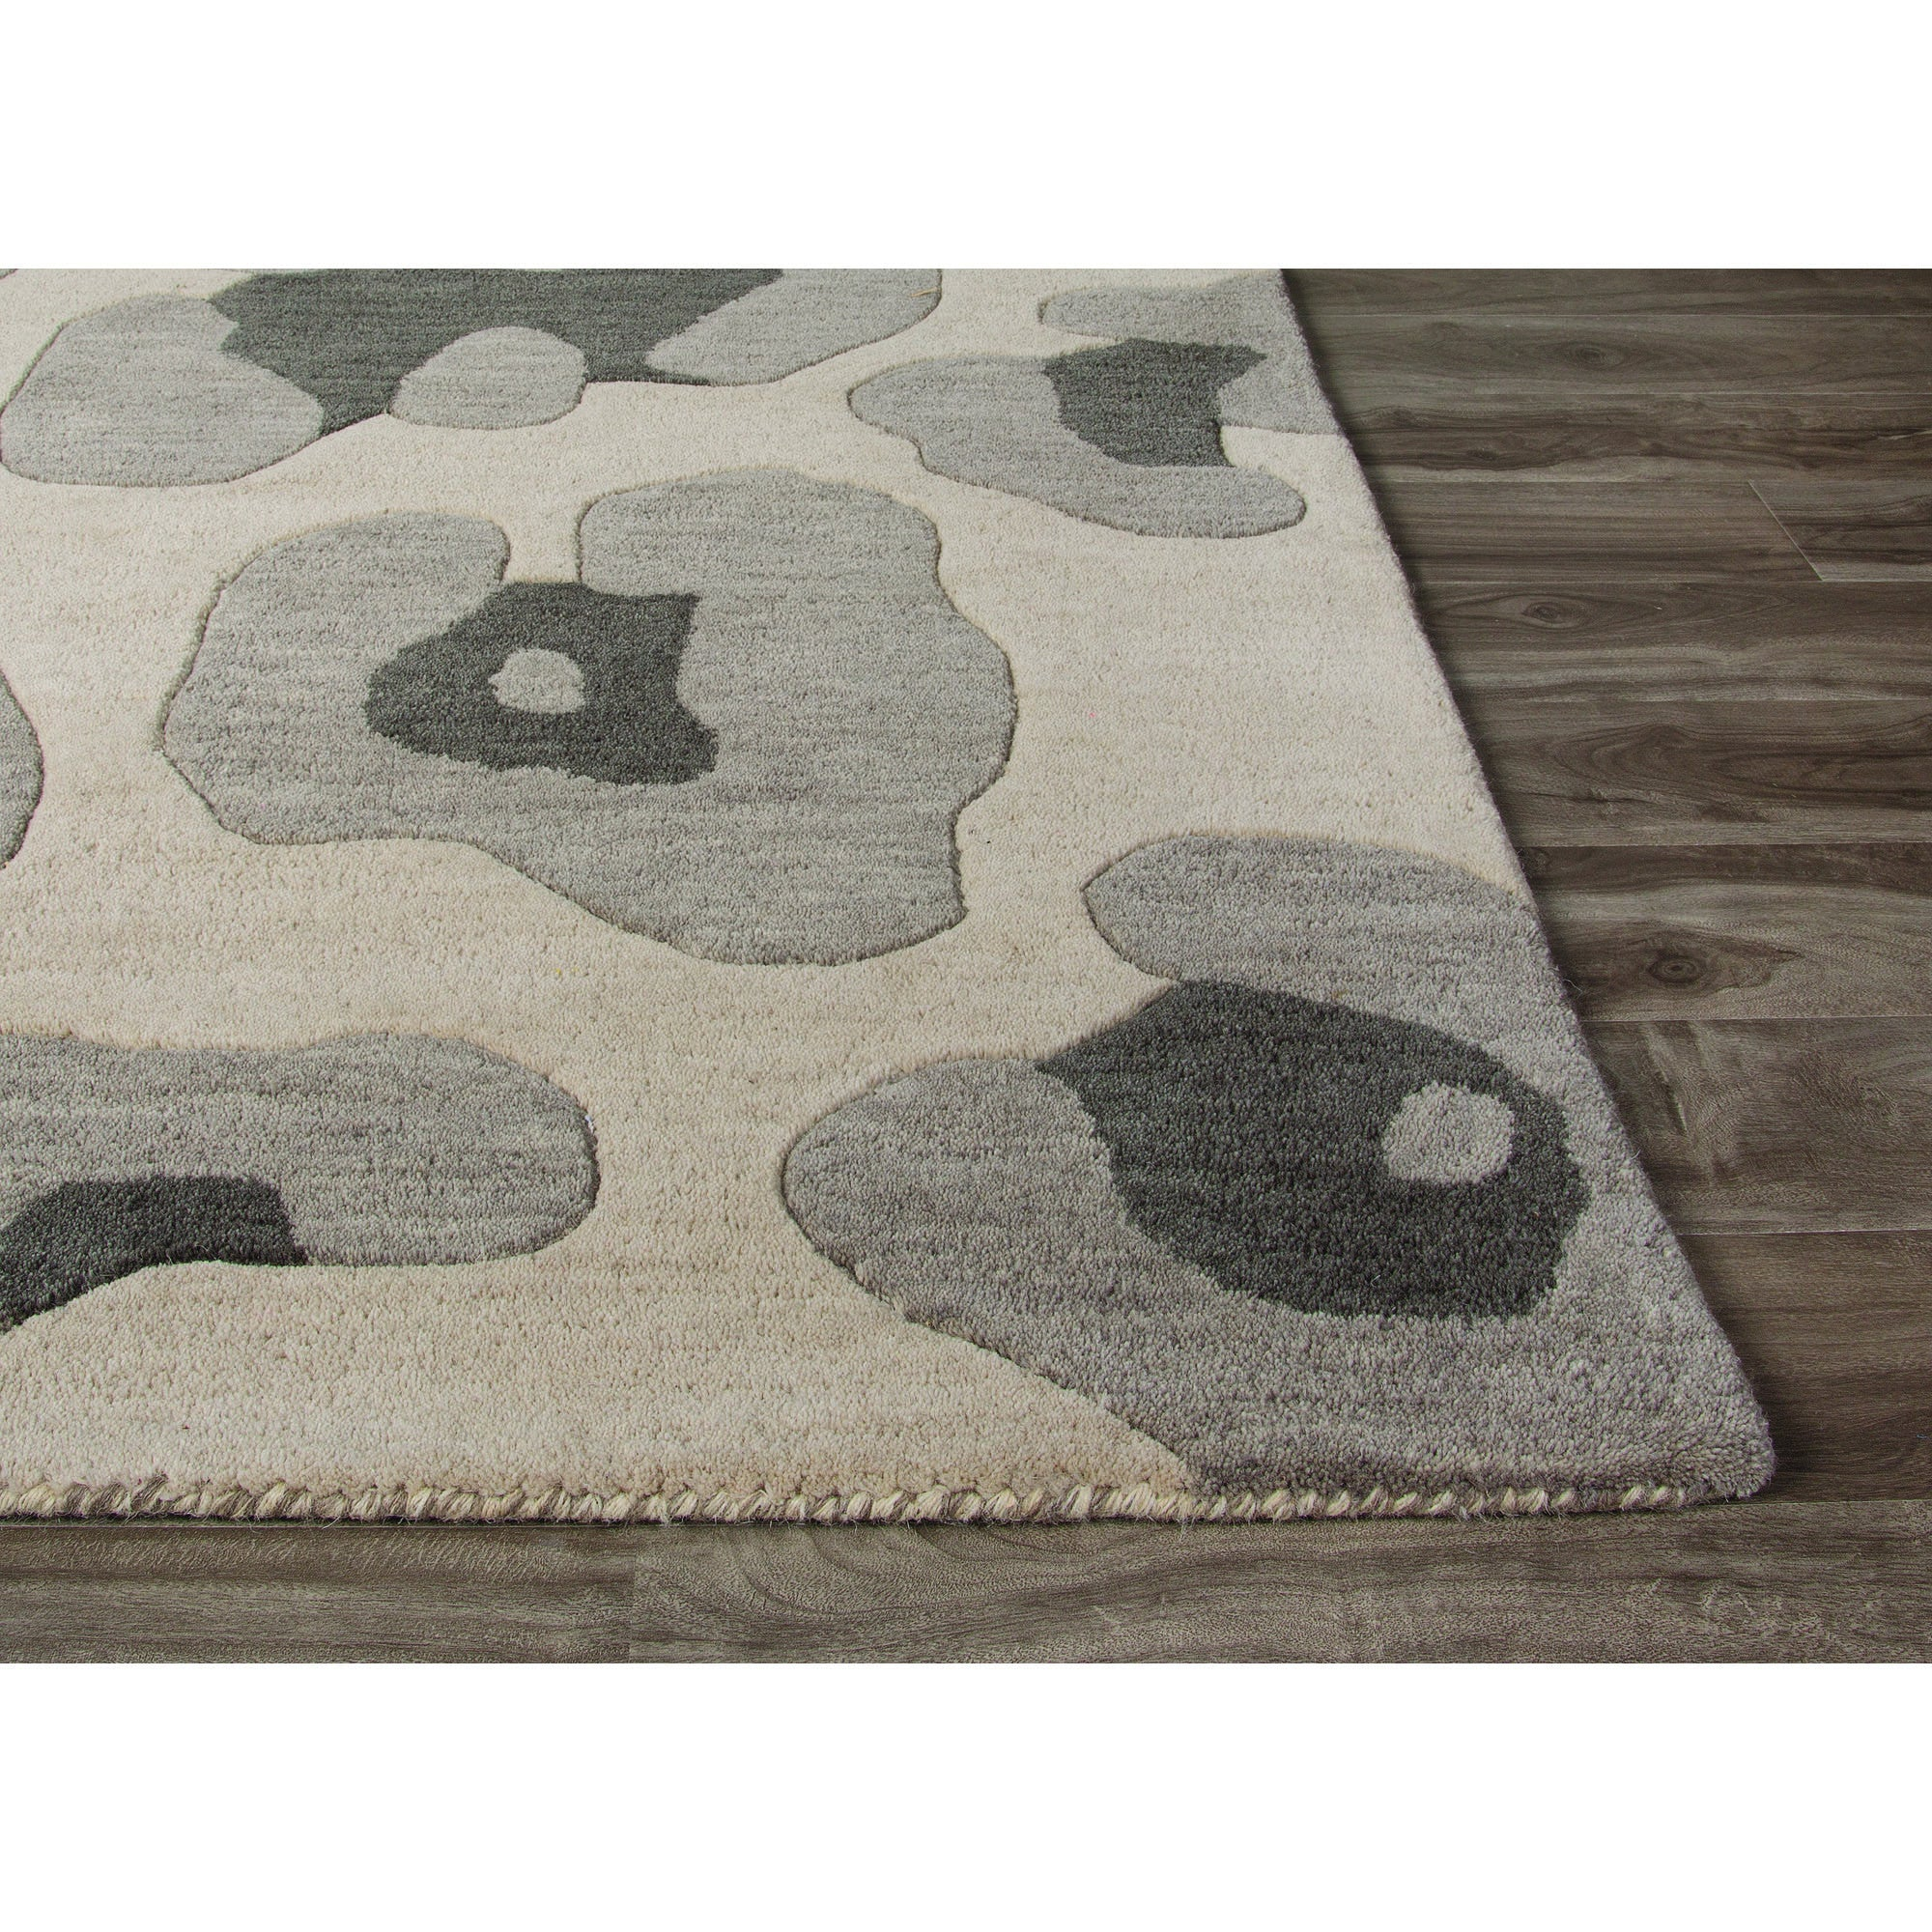 Jaipur Rugs Modern Animal Print Pattern Gray Wool Area Rug